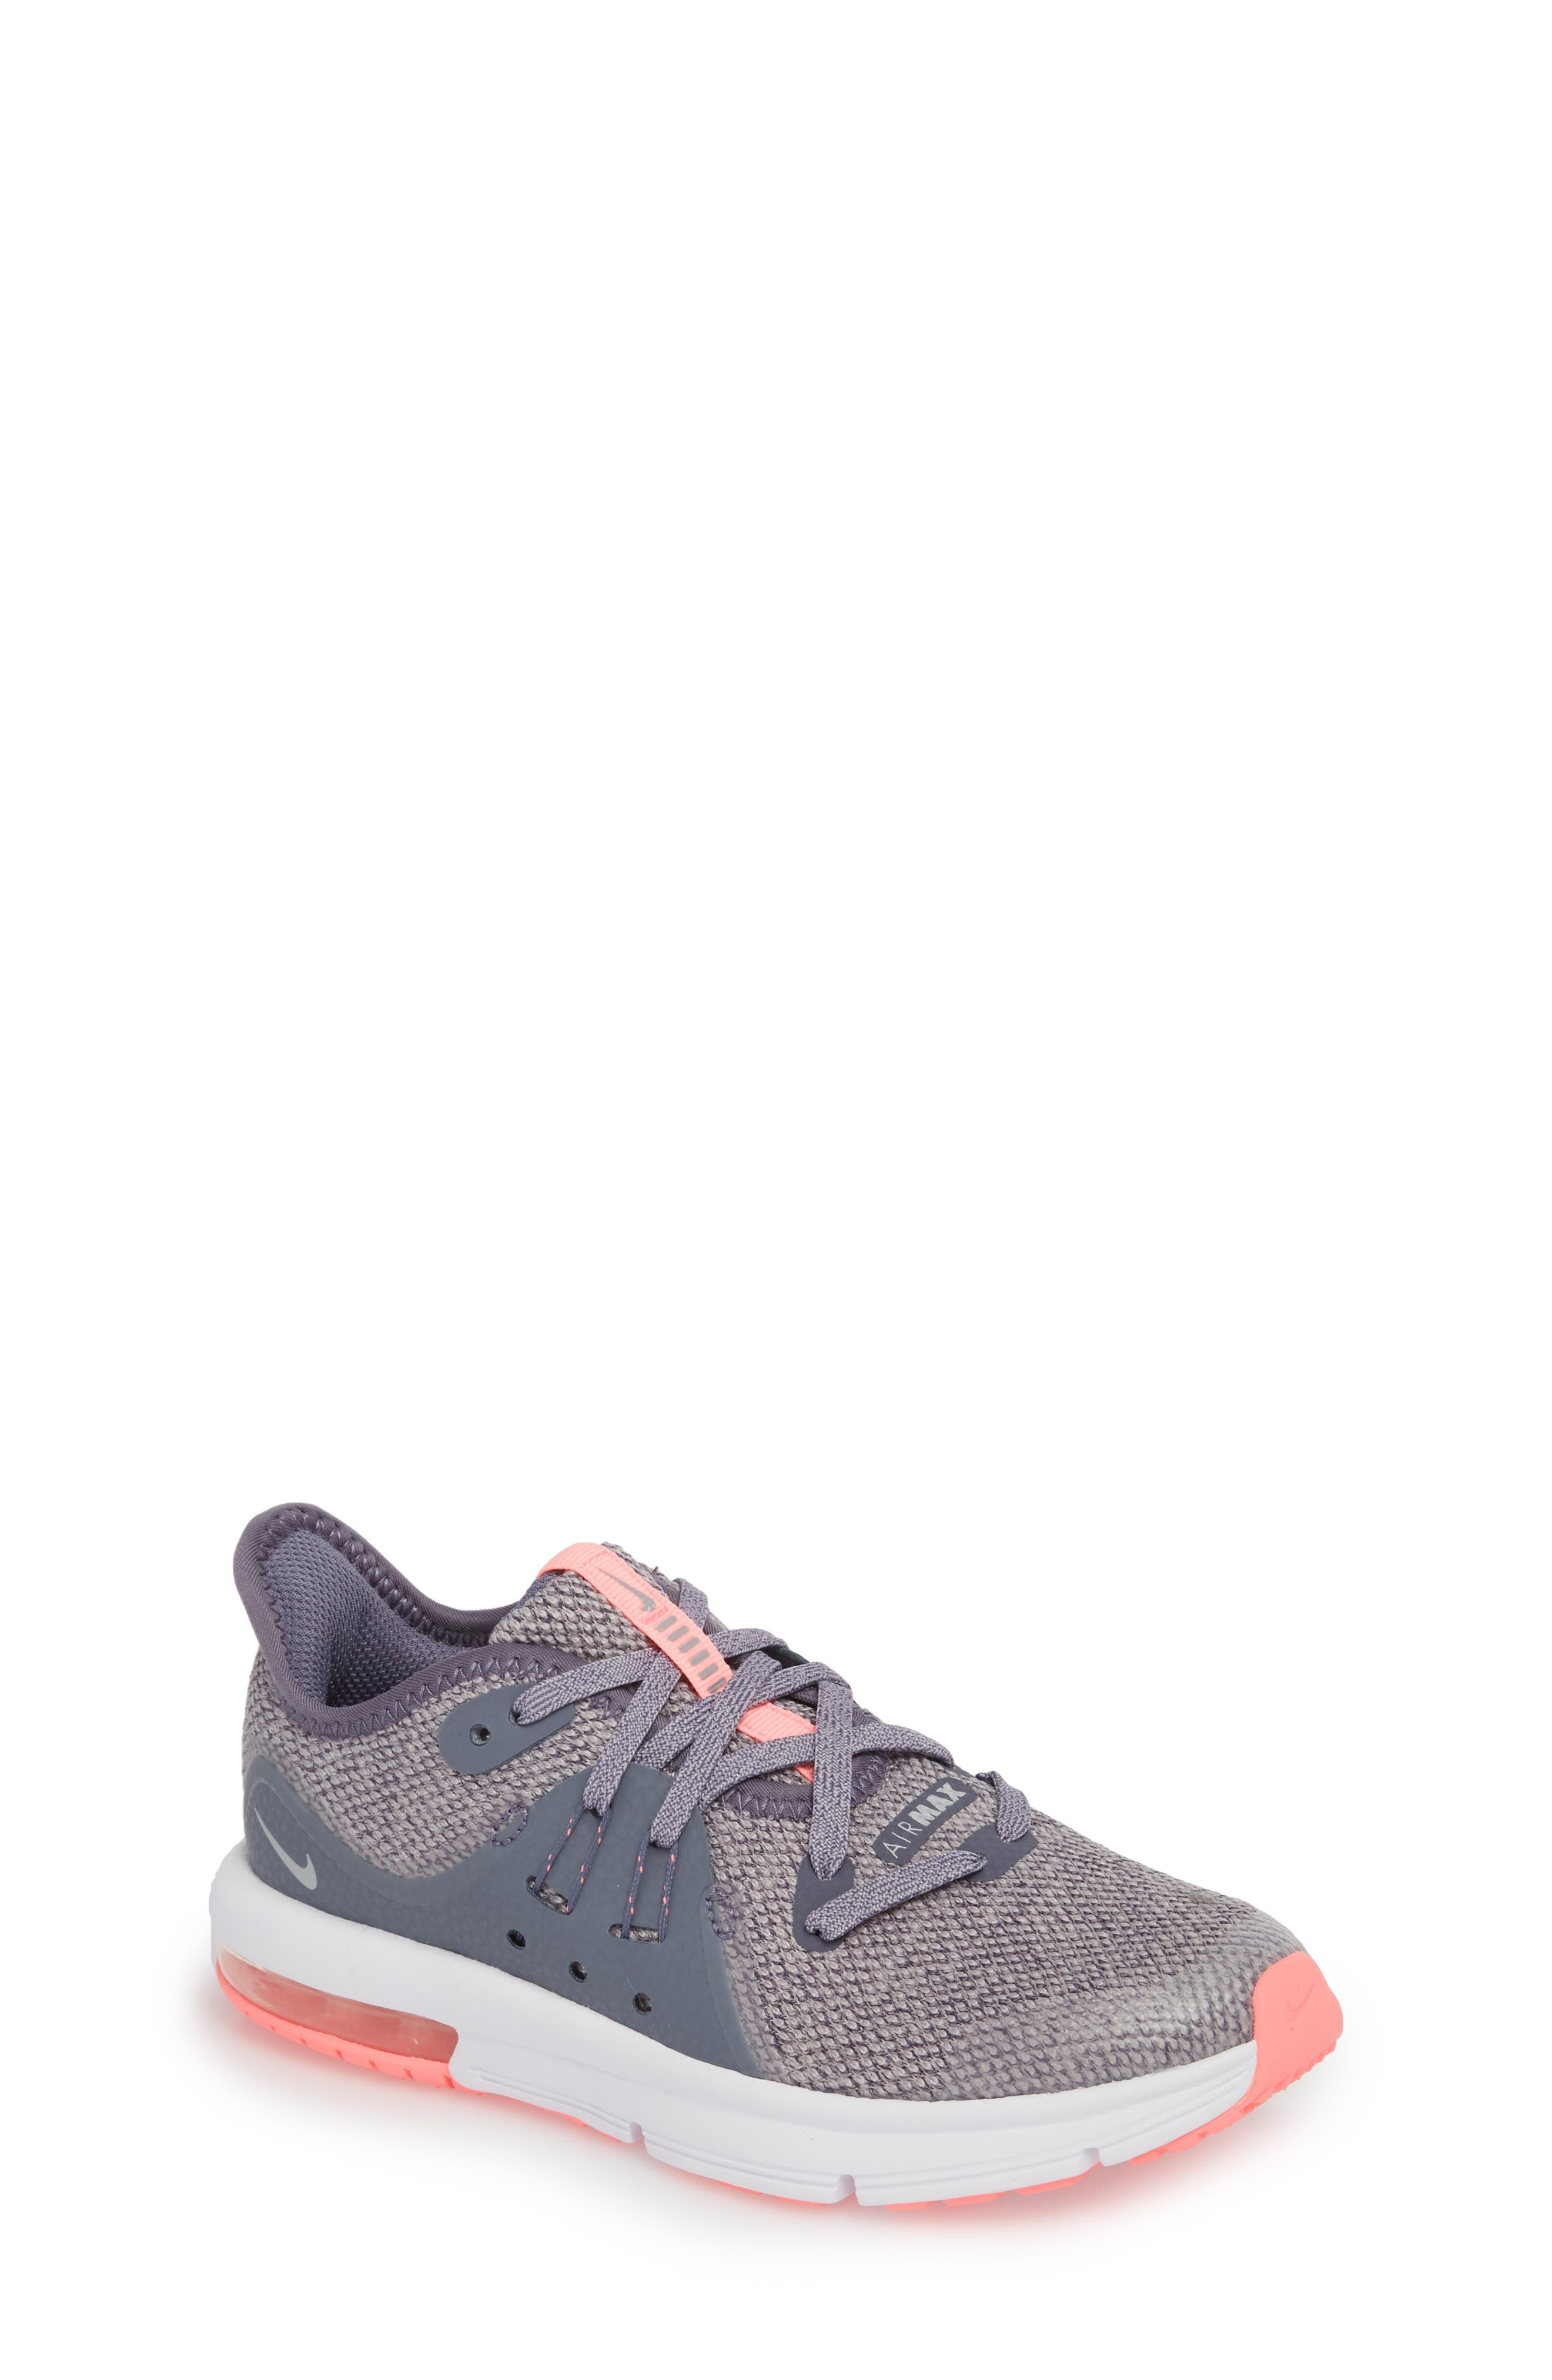 Little Girlsu0027 Nike Shoes (Sizes 12.5-3) | Nordstrom